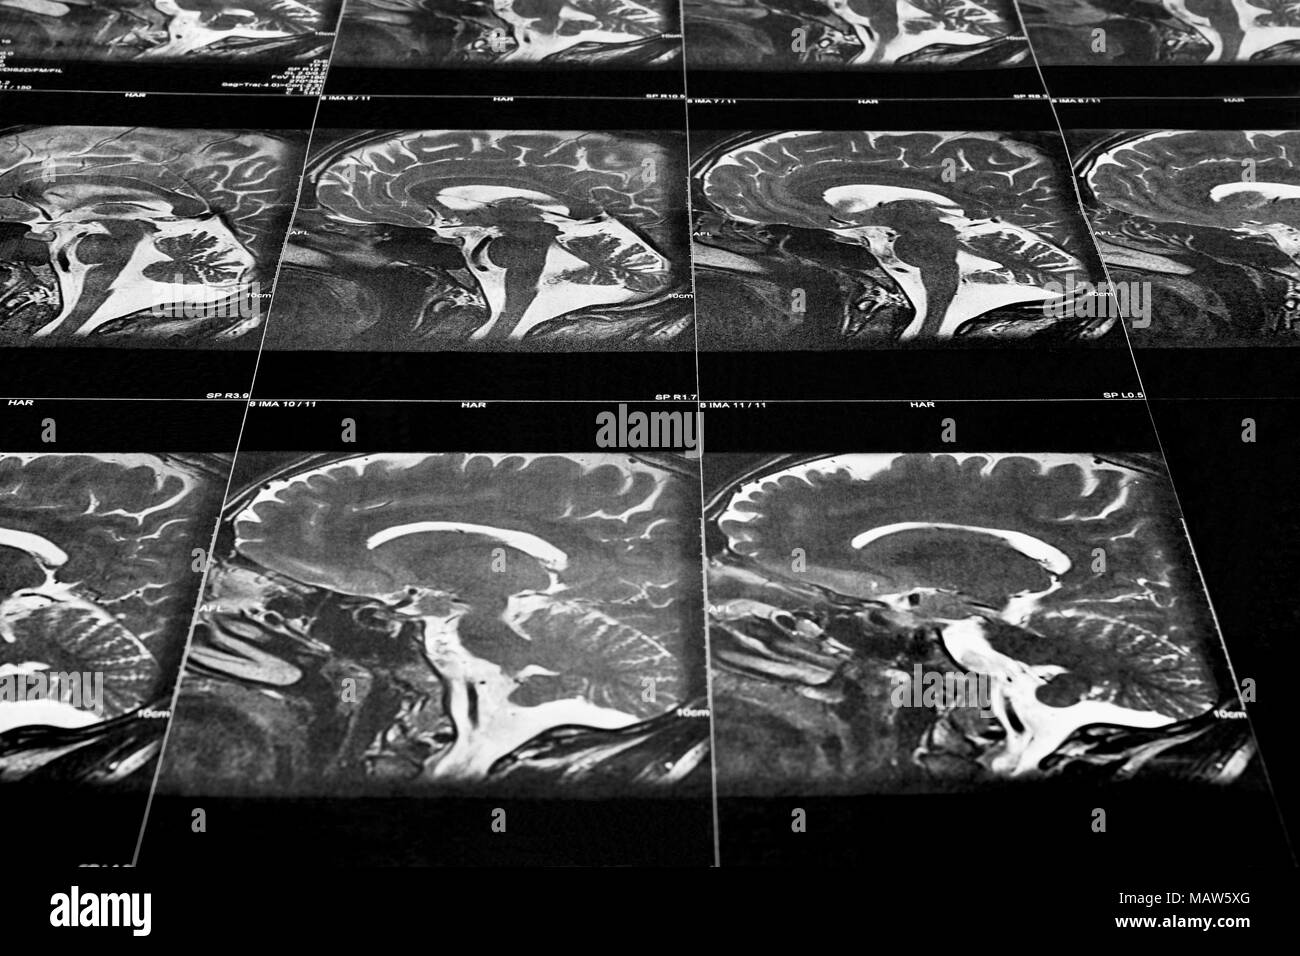 Perspective View Of A Mri Scan Of The Human Brain Sagittal View